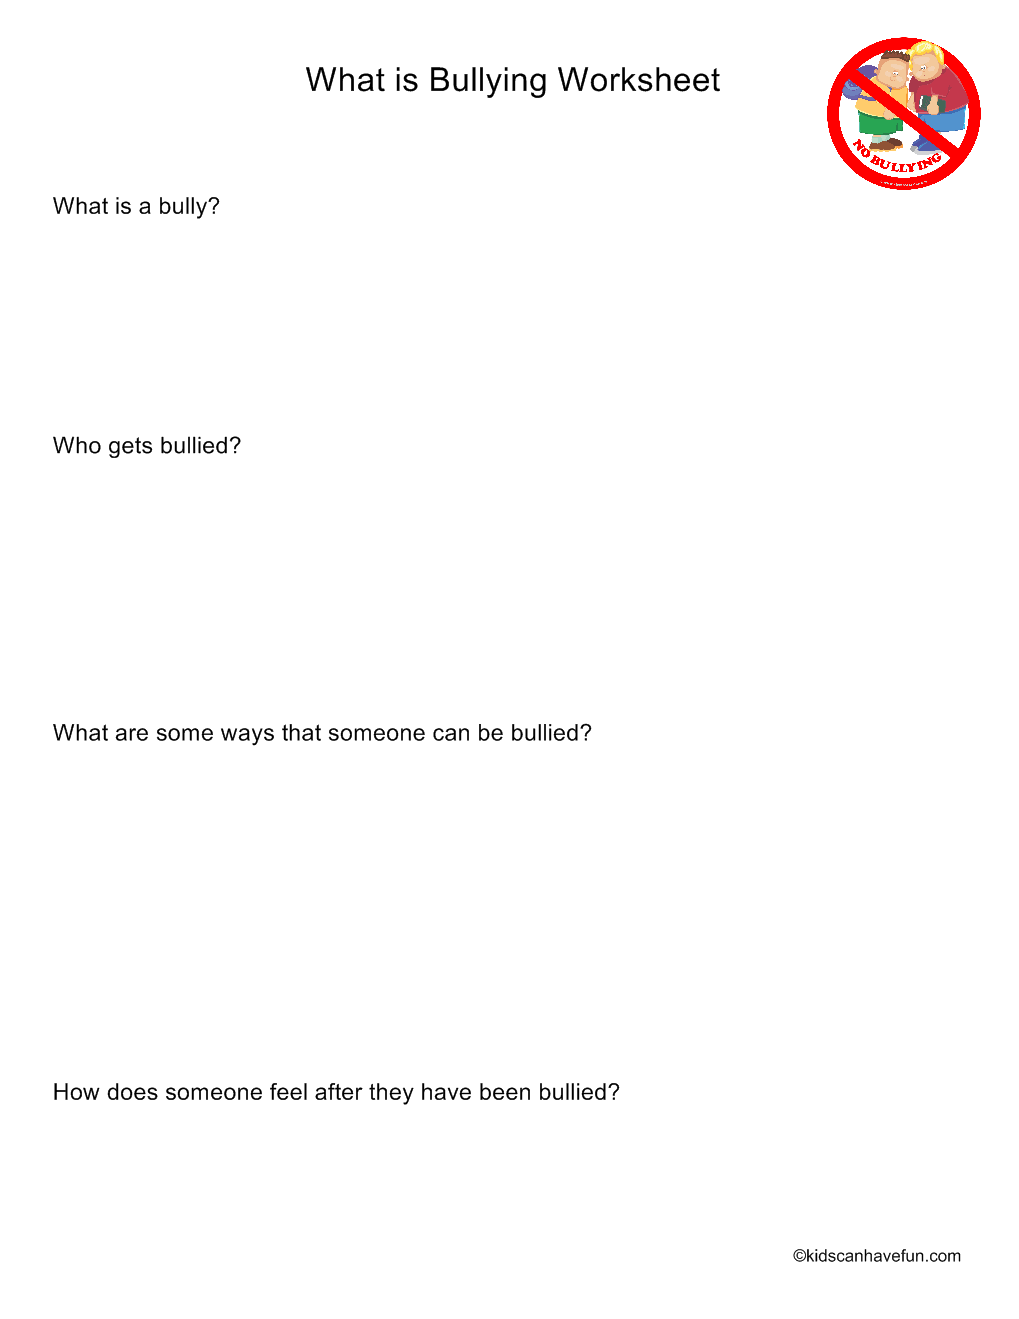 What is Bullying Worksheet Summer school